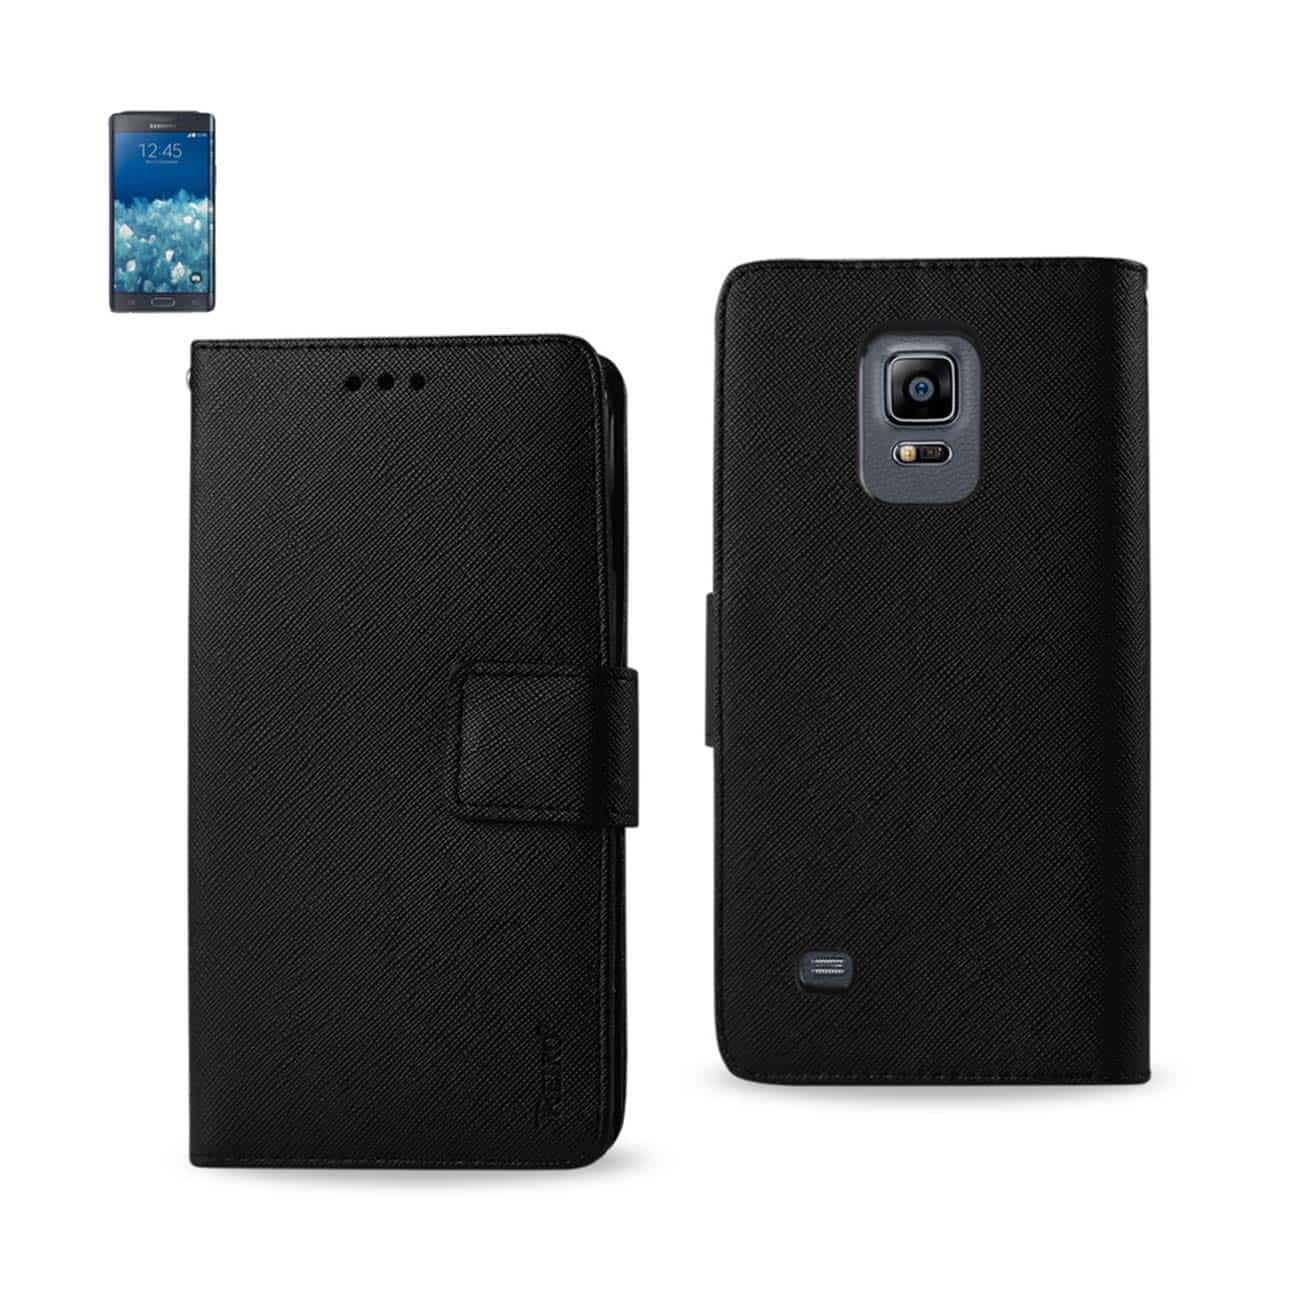 SAMSUNG GALAXY NOTE EDGE 3-IN-1 WALLET CASE IN BLACK